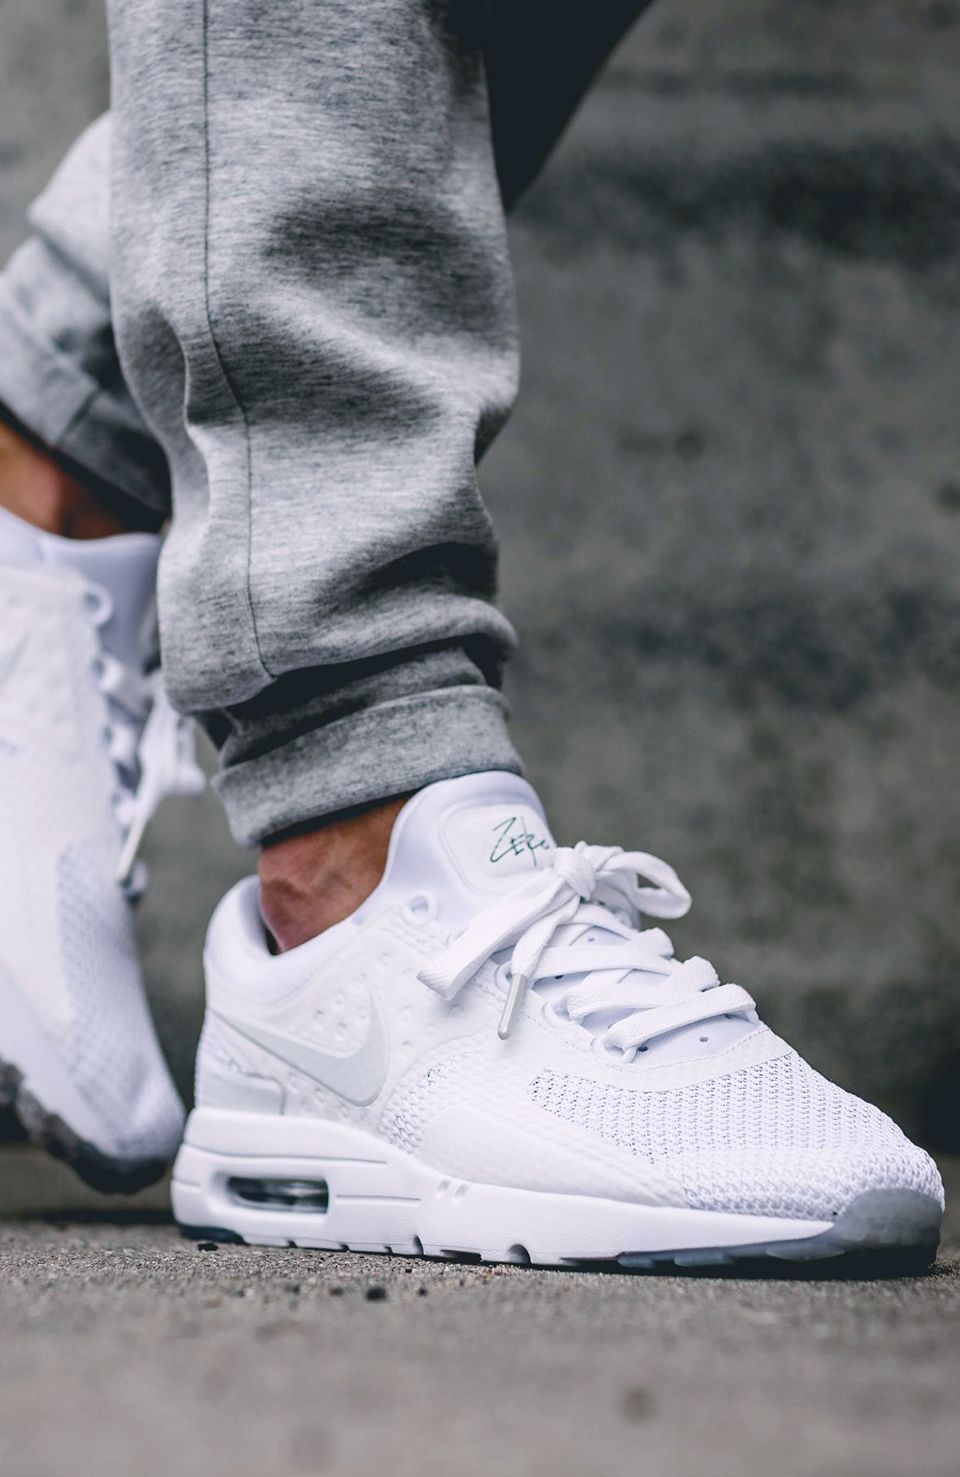 buy online 65424 c90e2 NIKE AIR MAX ZERO Triple White  sneakernews  Sneakers  StreetStyle  Kicks